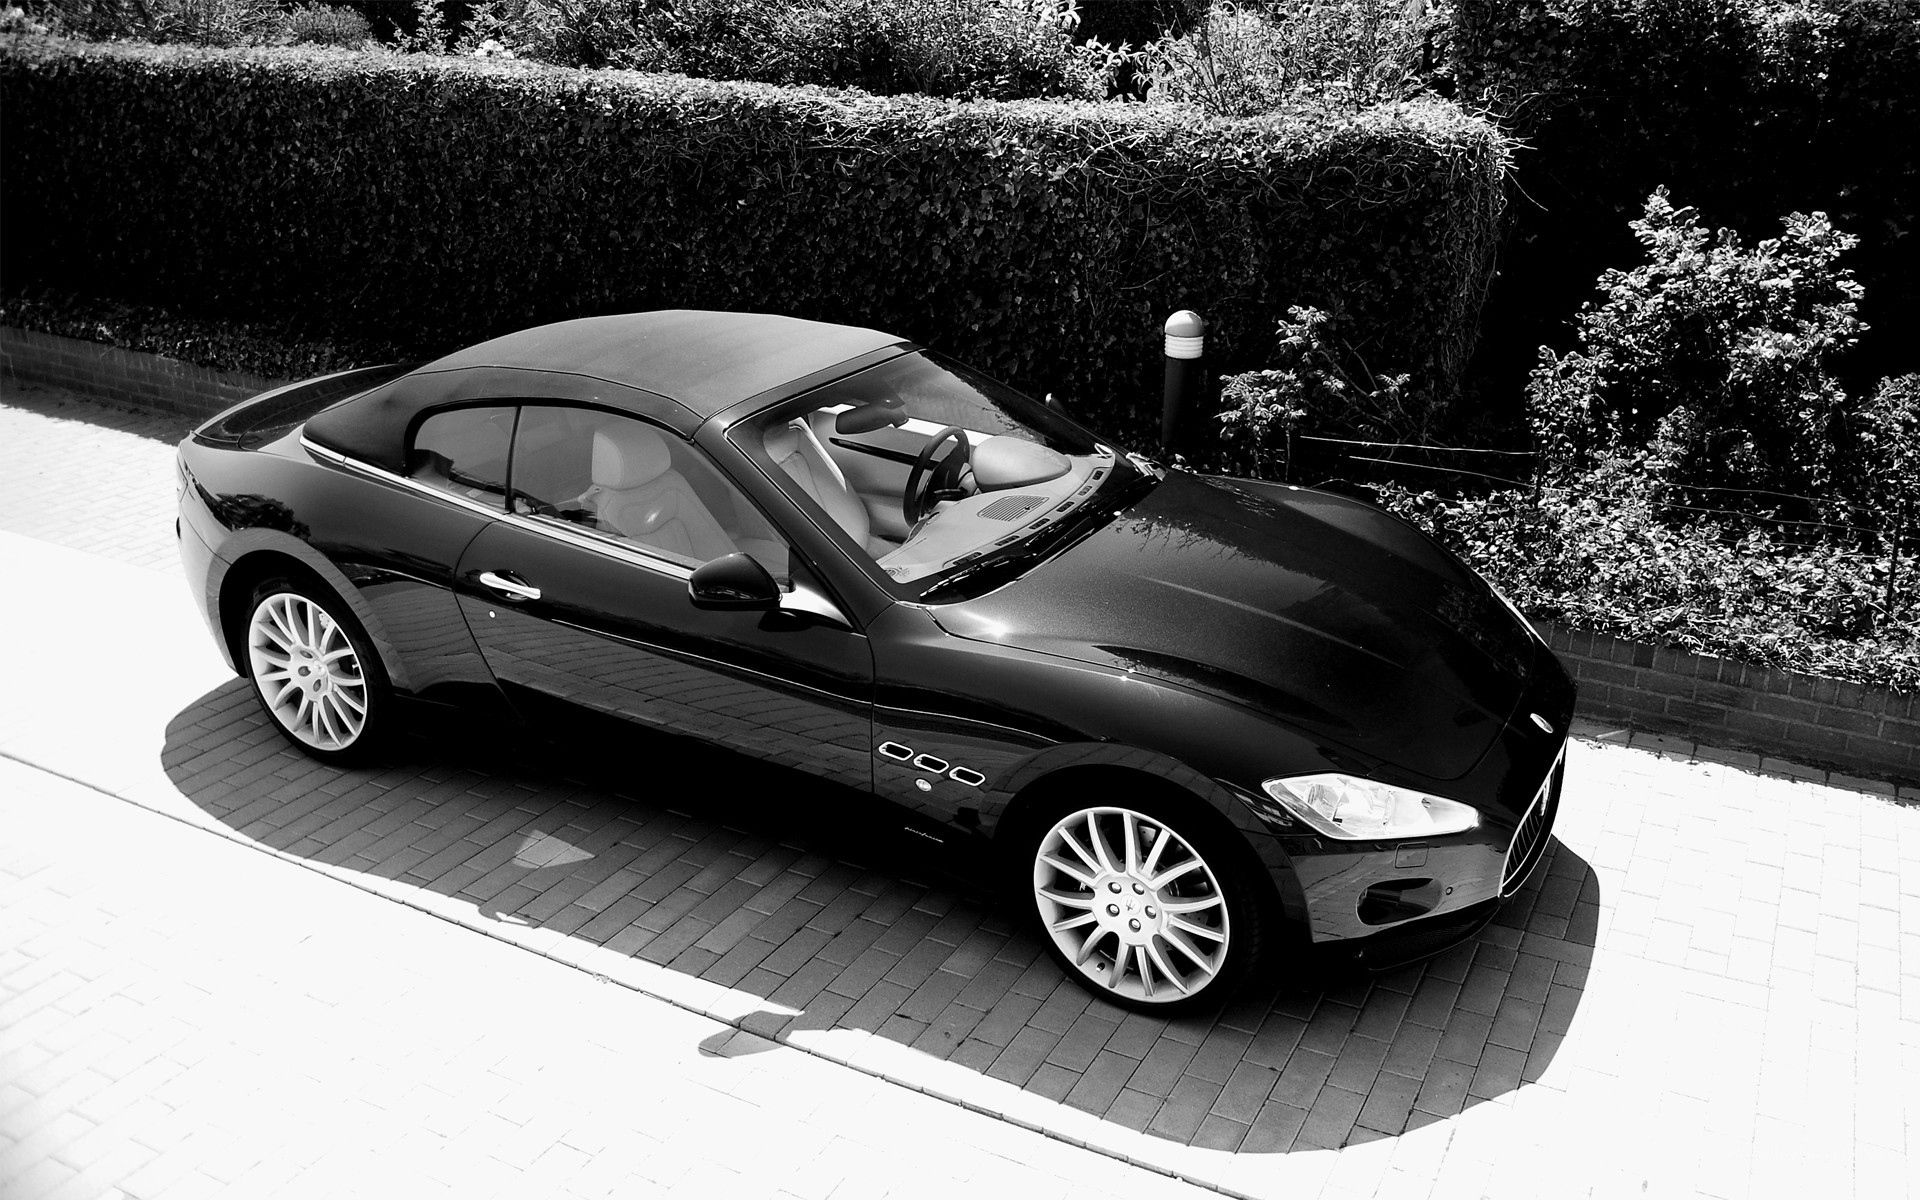 53939 download wallpaper Cars, Maserati, View From Above, Style screensavers and pictures for free